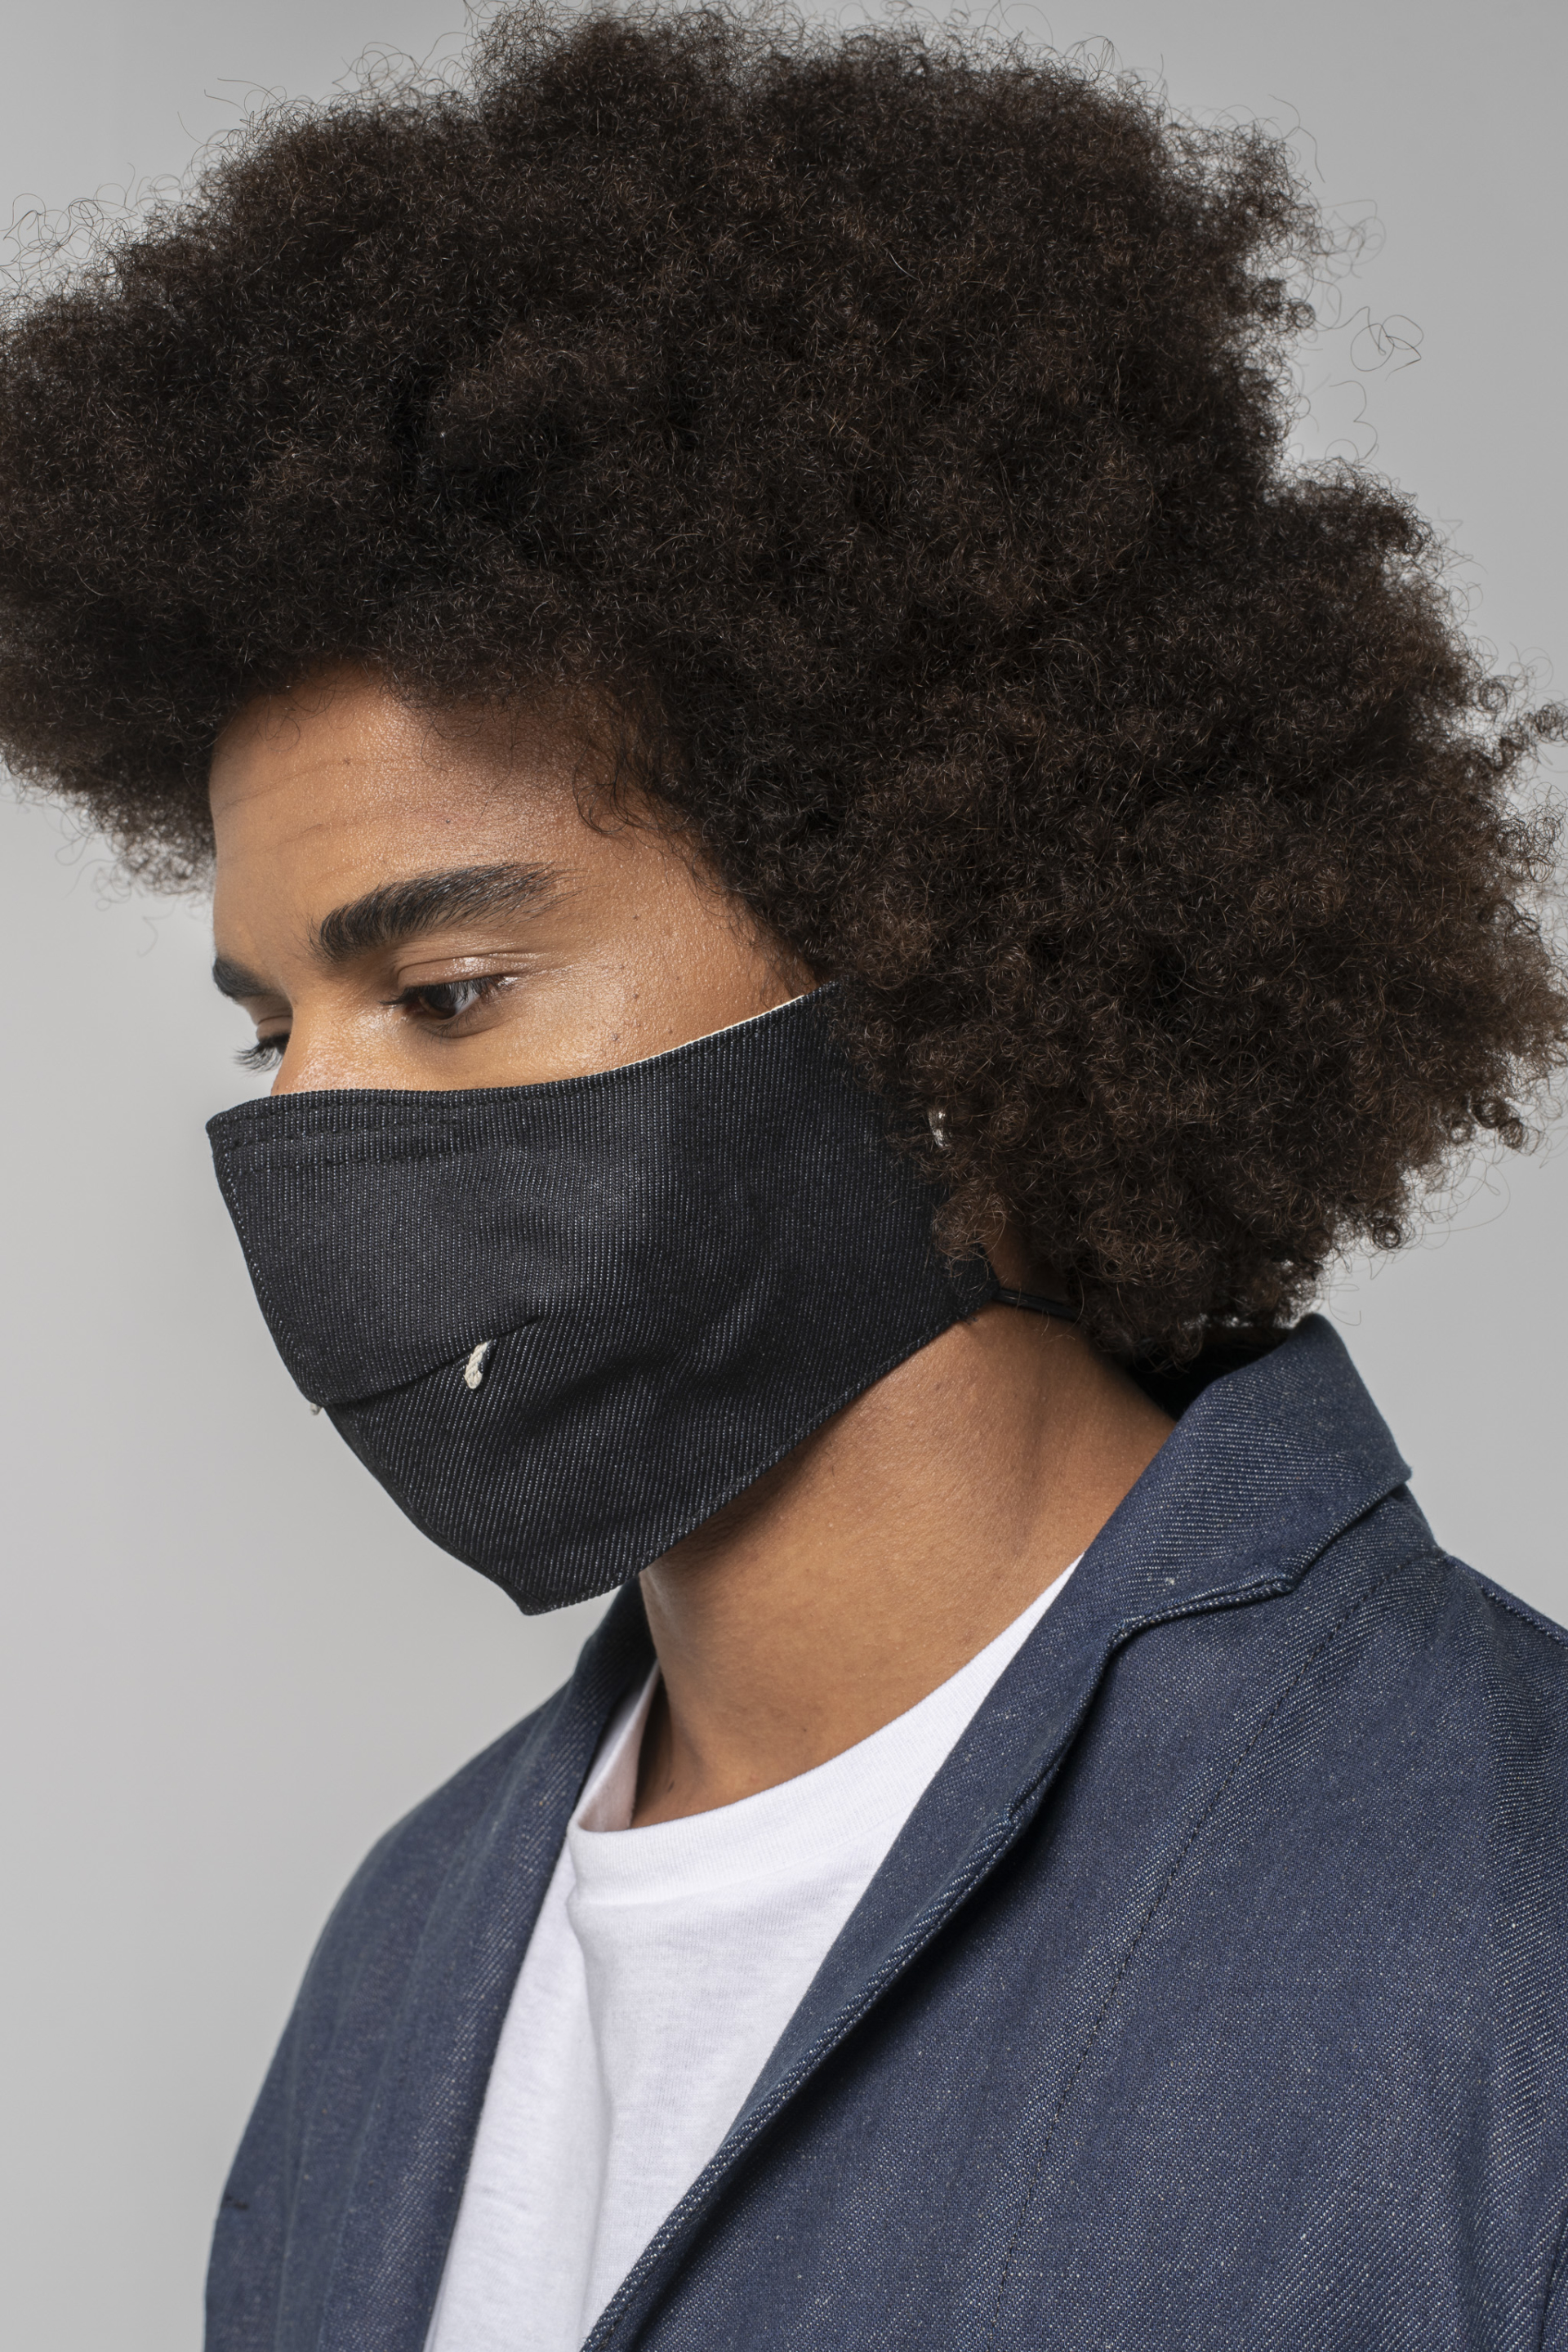 denim jeans selvedge denim vampire mask matias denim candiani denim store